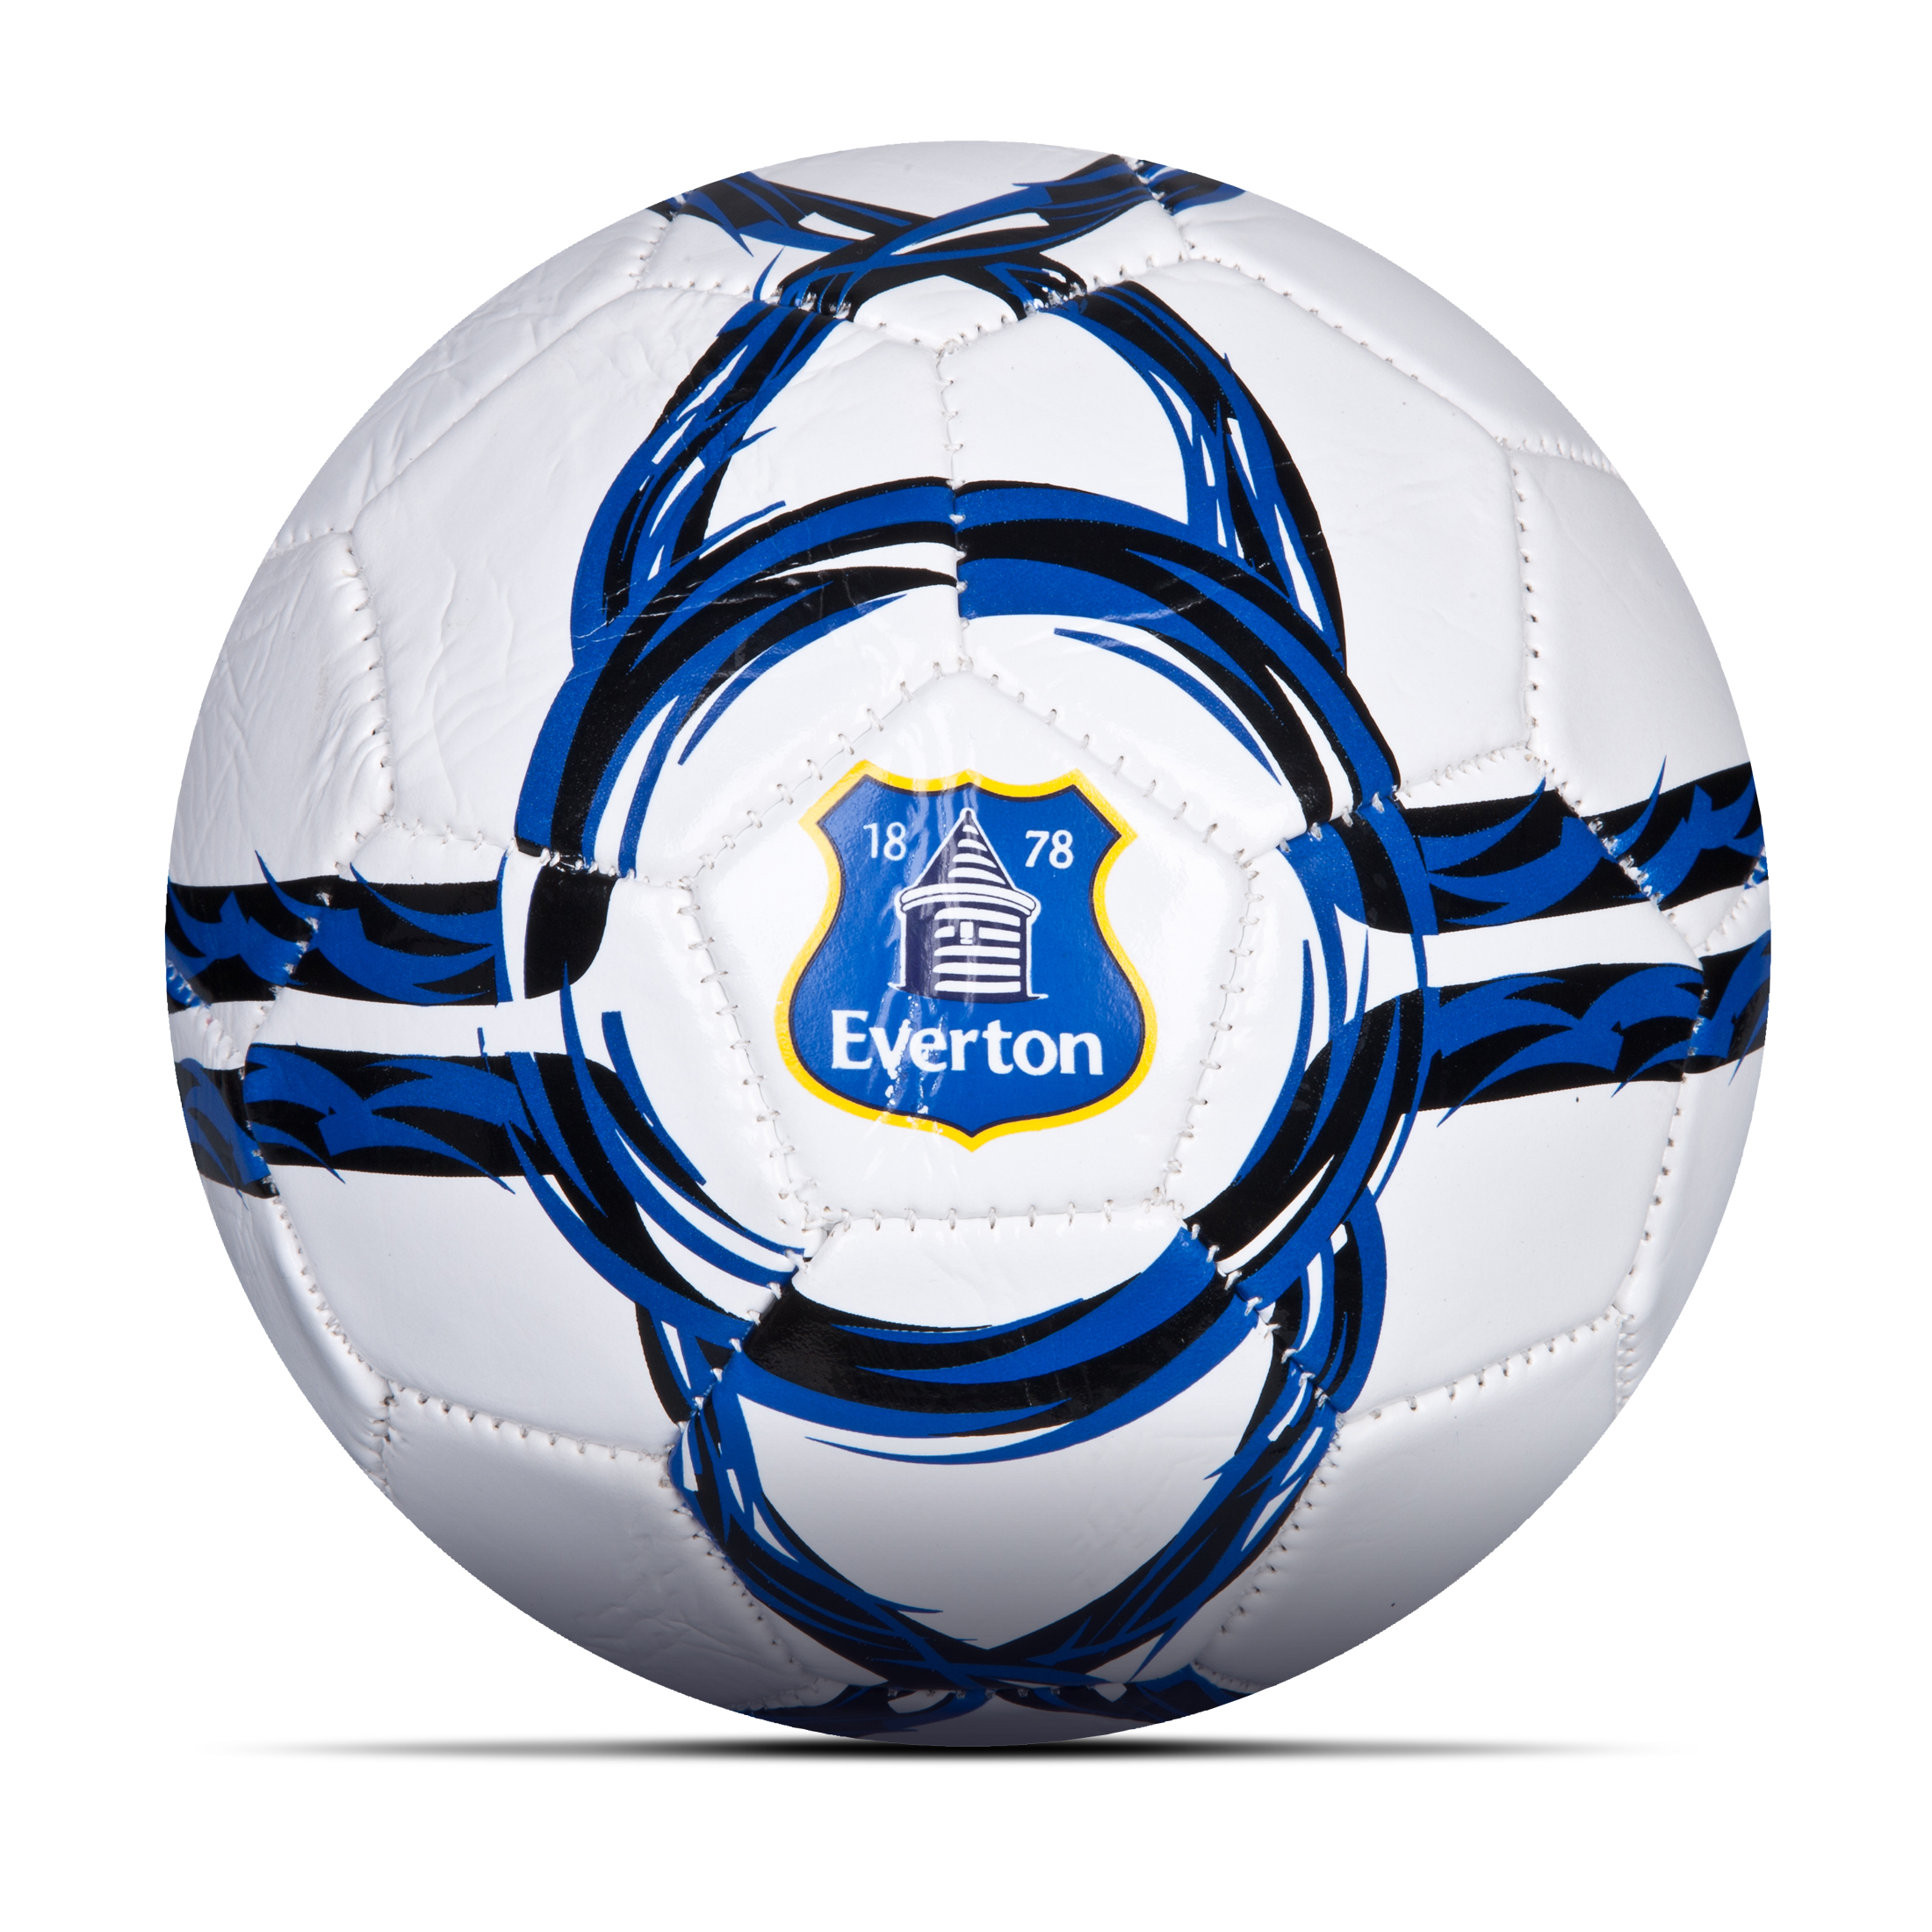 Everton Core Football - Size 2 - White